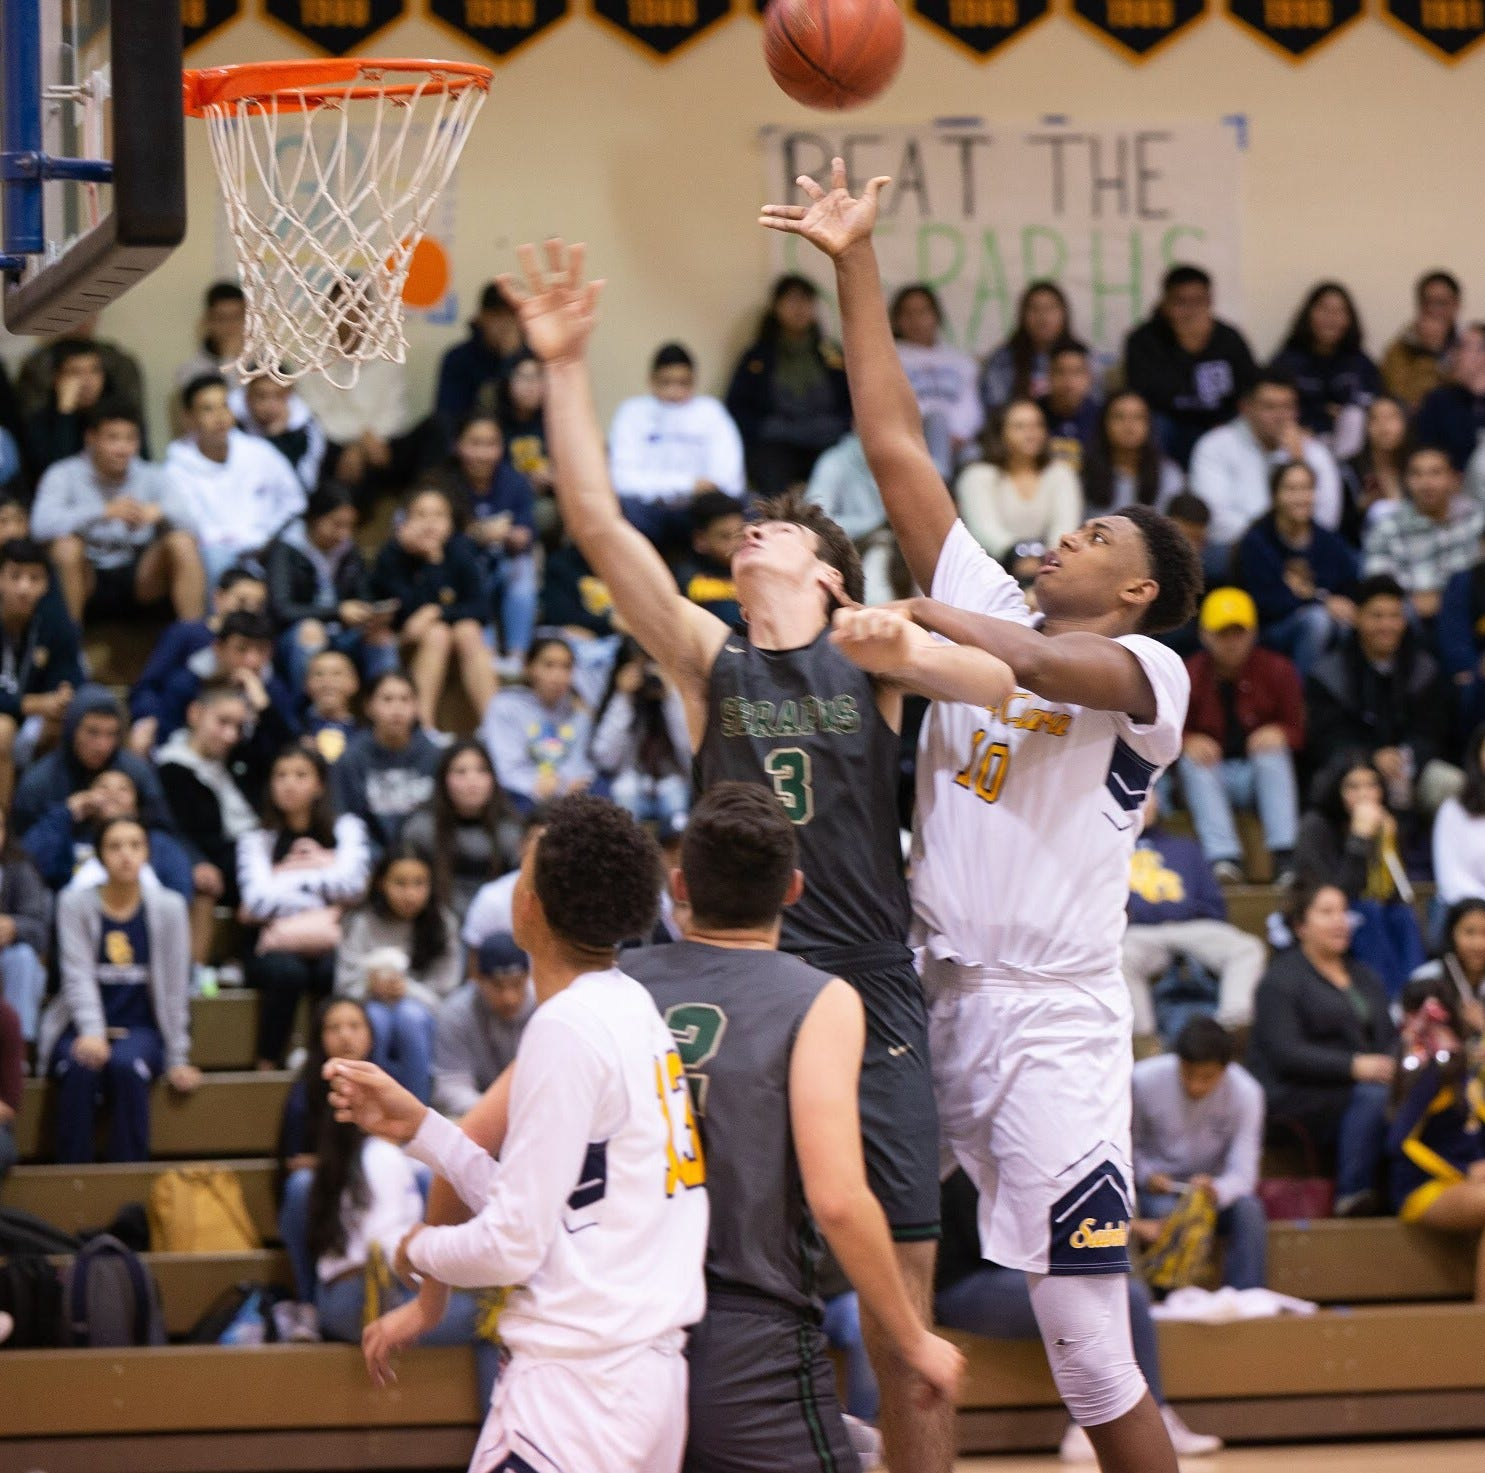 Santa Clara reaches semifinals; Camarillo, Moorpark knocked out in quarterfinals